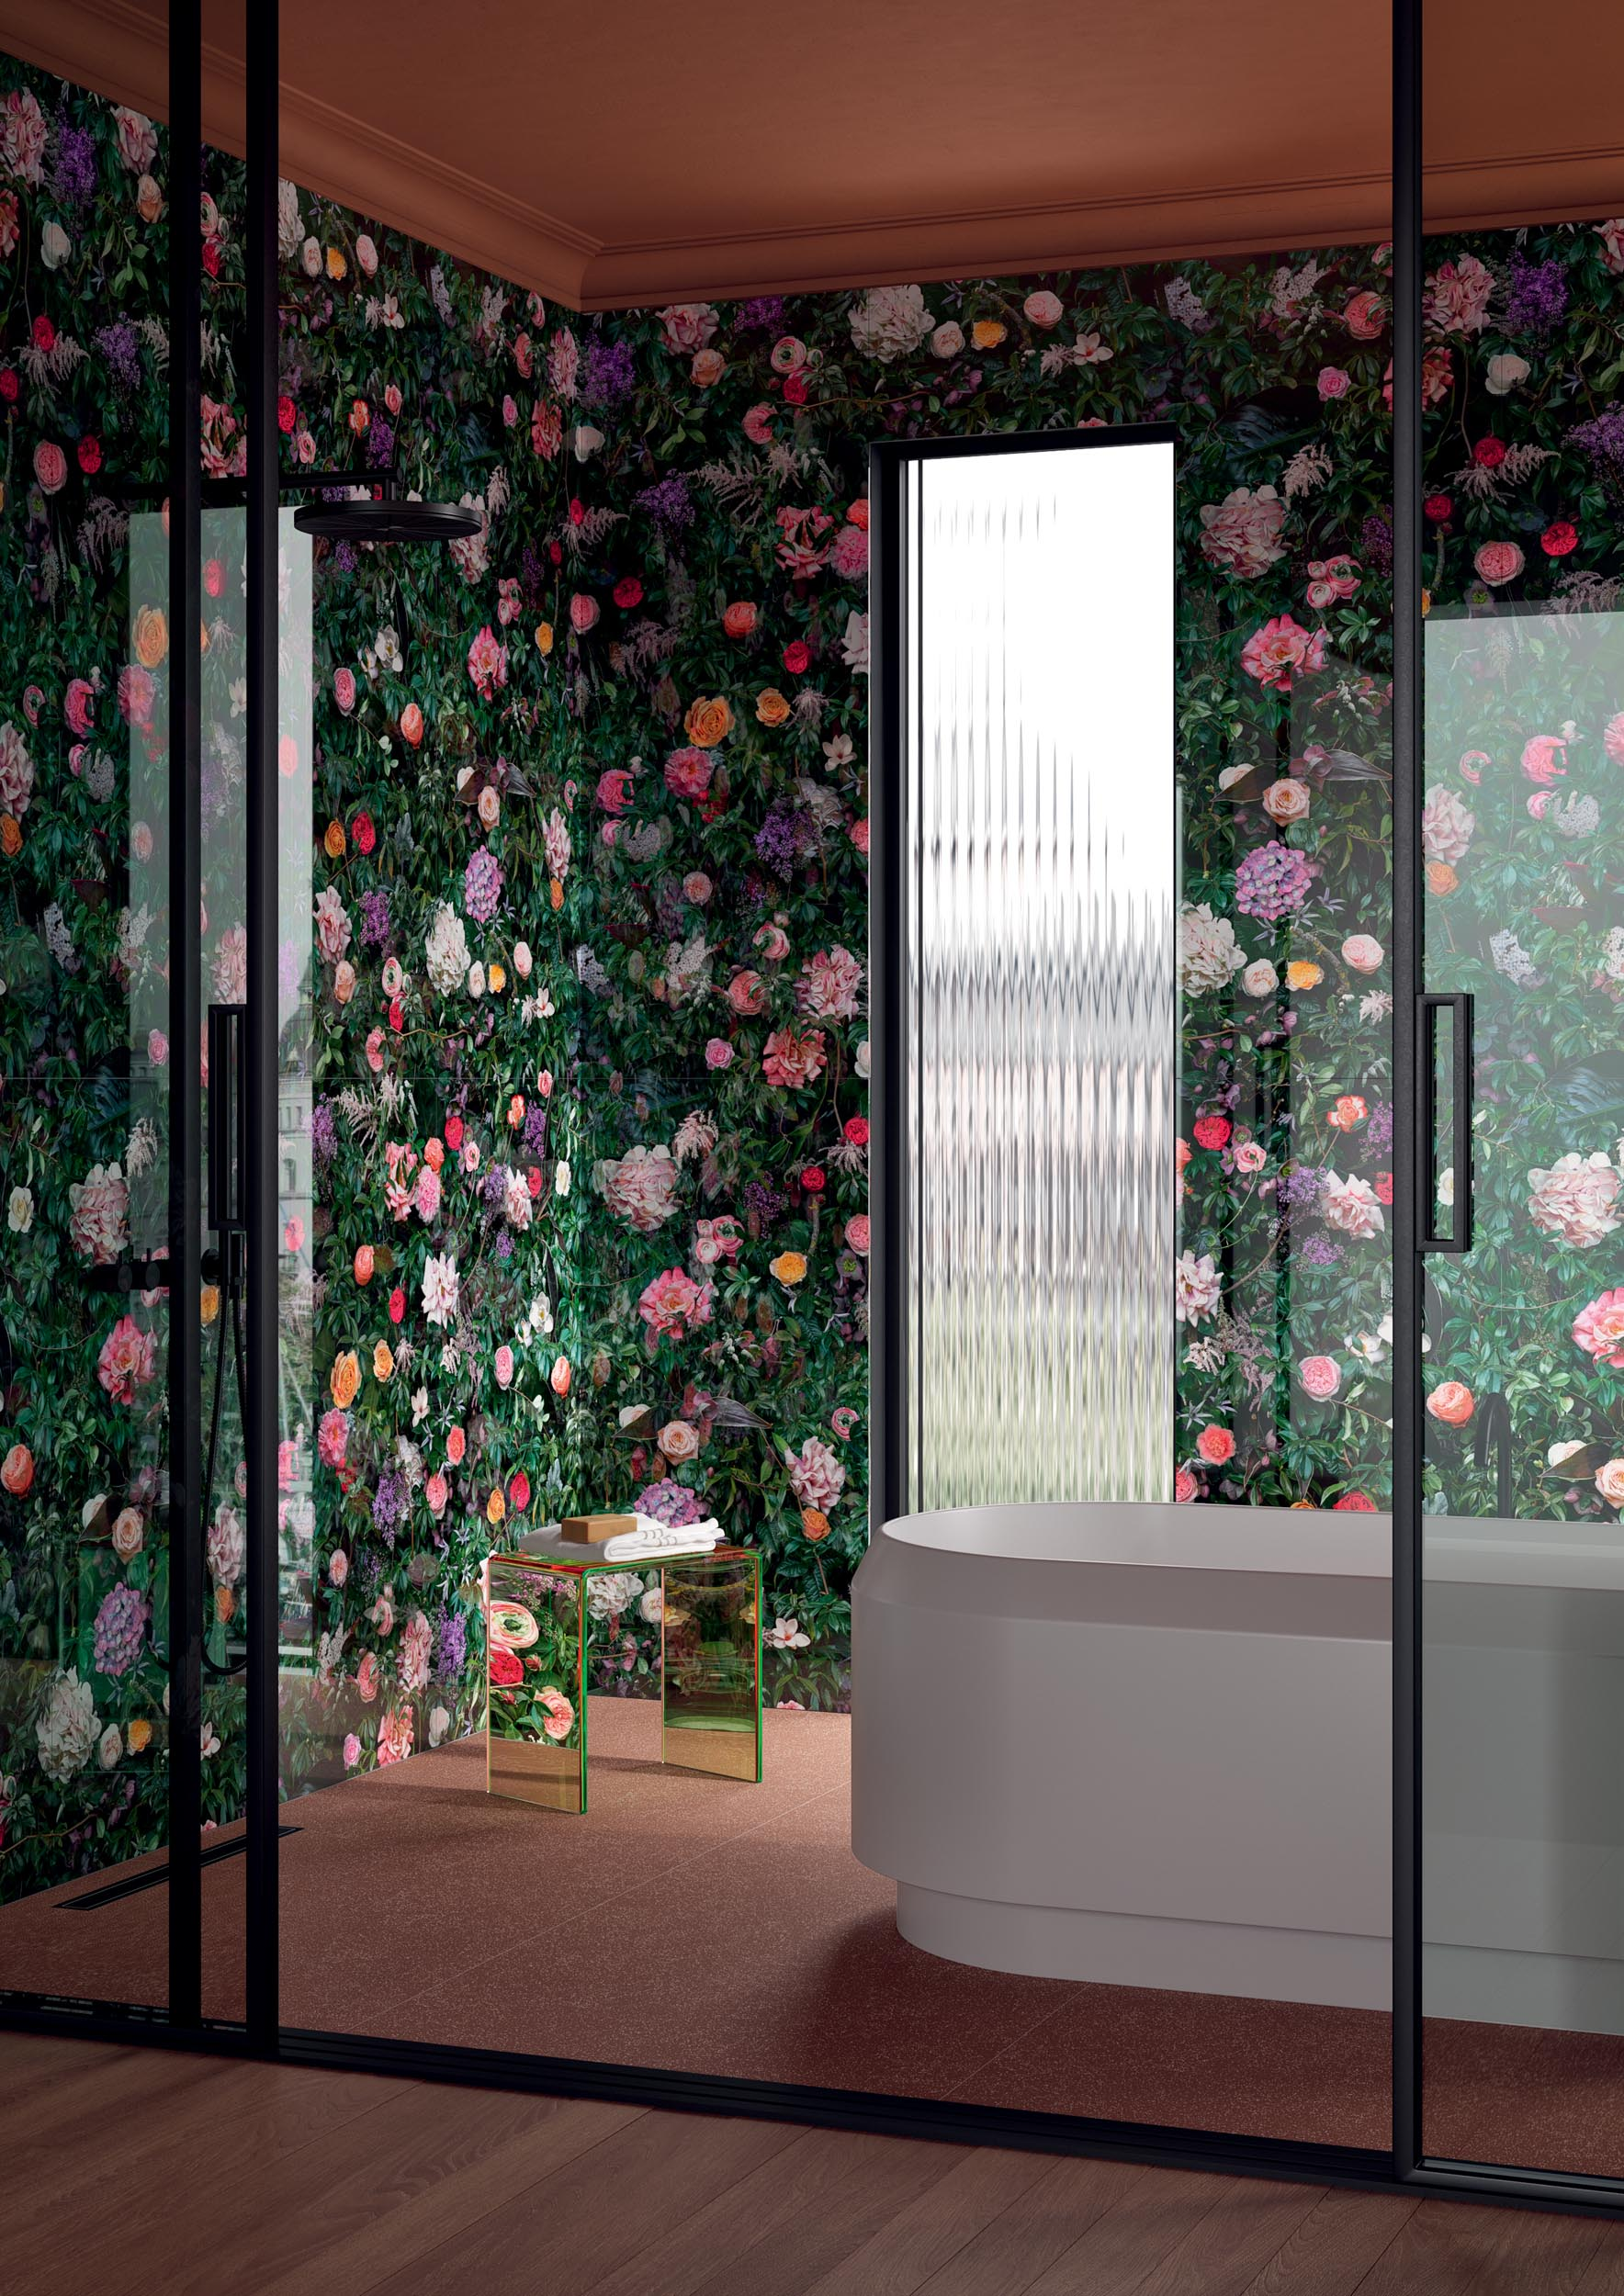 """Wall Paper41 Lux William 60x120 24""""x48"""" - Floor Cosmo Cotto 80x80 32""""x32"""""""